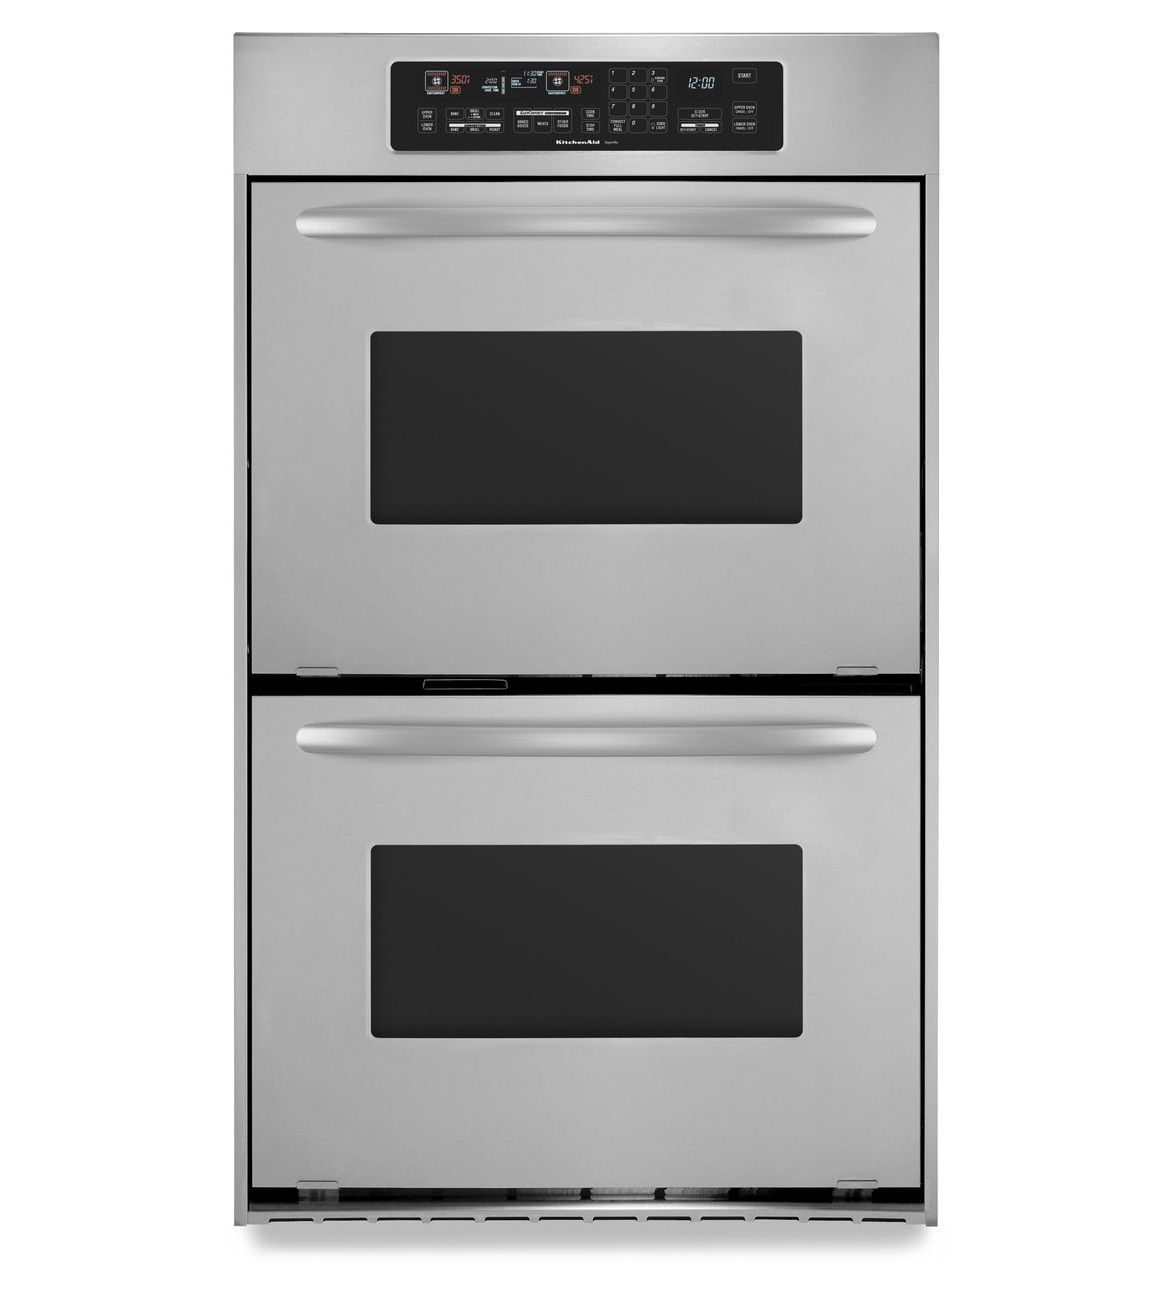 Kitchenaid architect series ii microwave bestmicrowave for Kitchenaid microwave